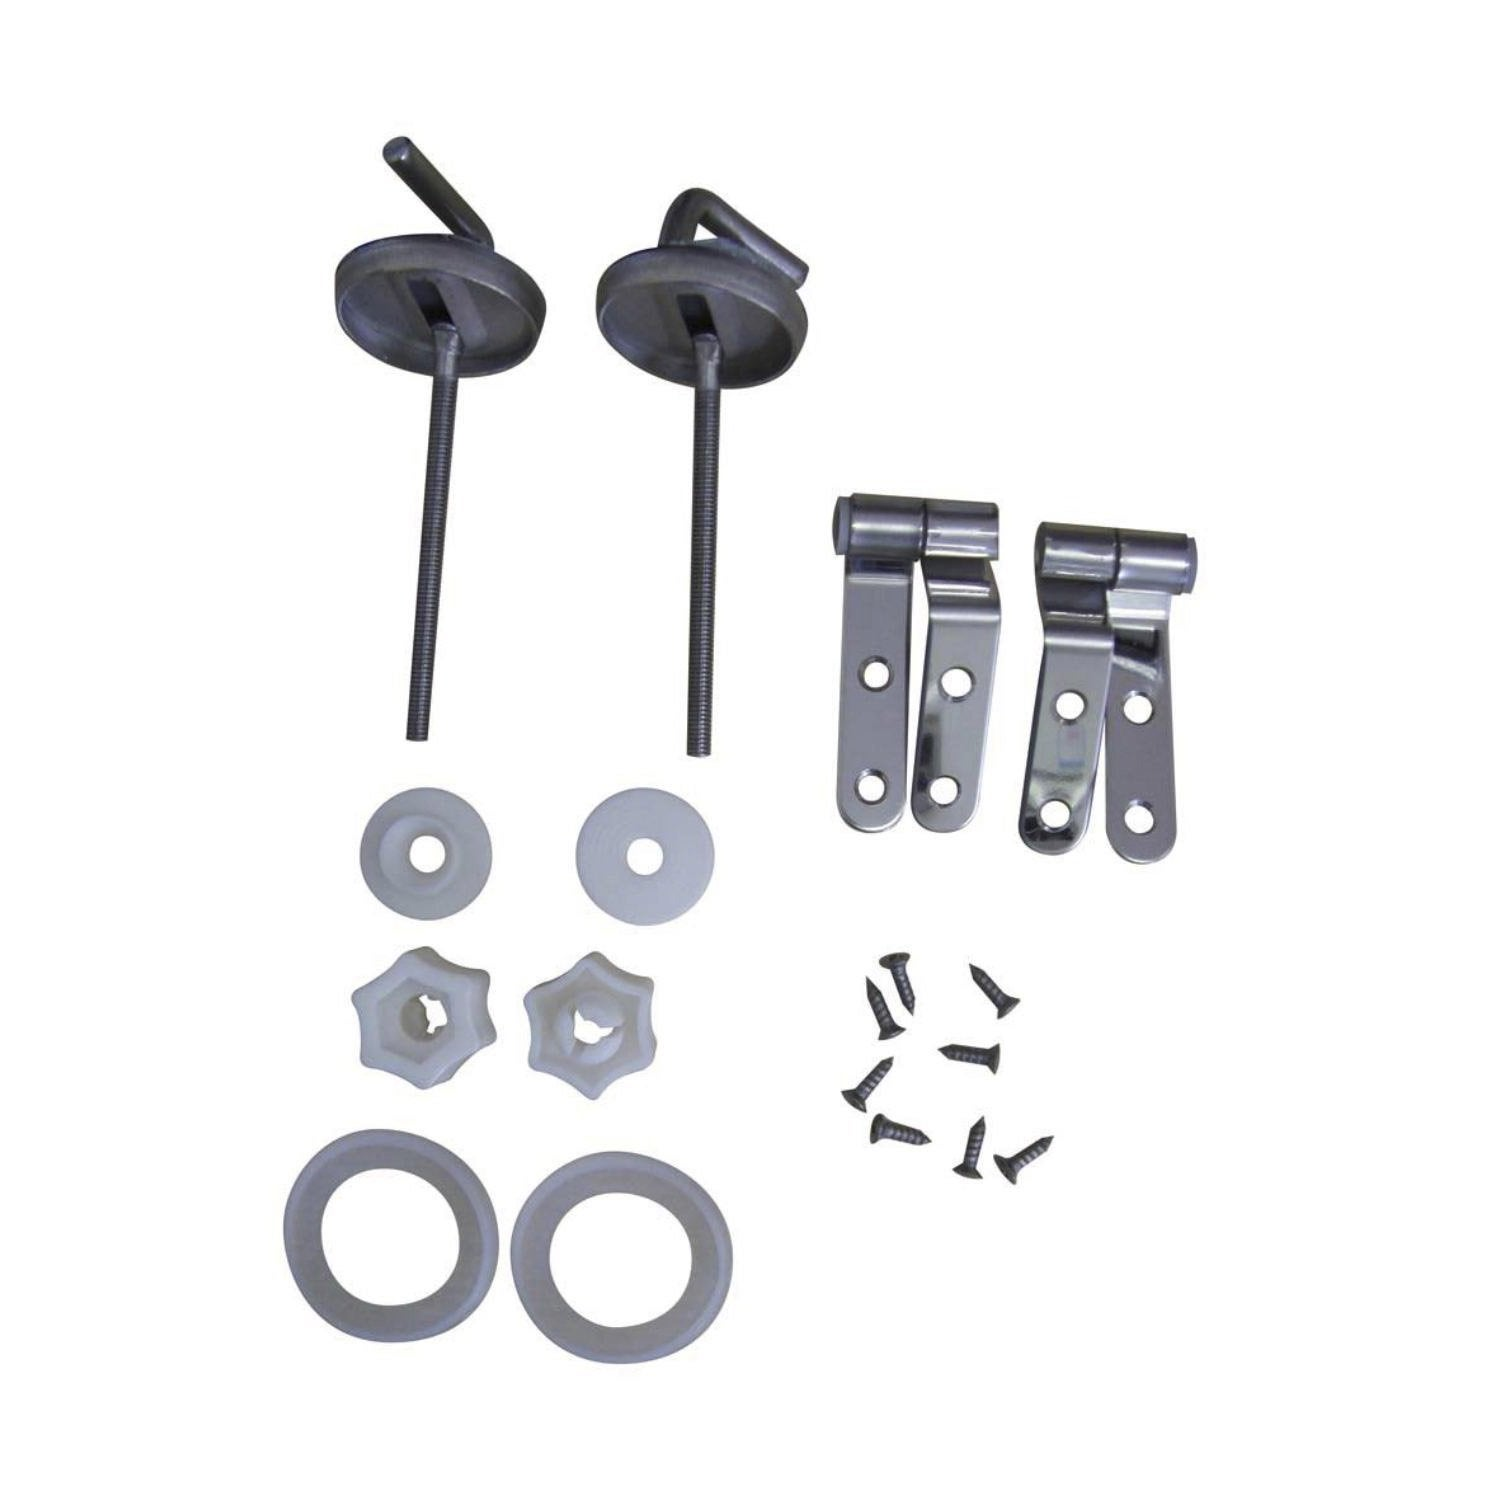 Kit de fixation pour abattant wc leroy merlin - Kit oscilobatiente leroy merlin ...